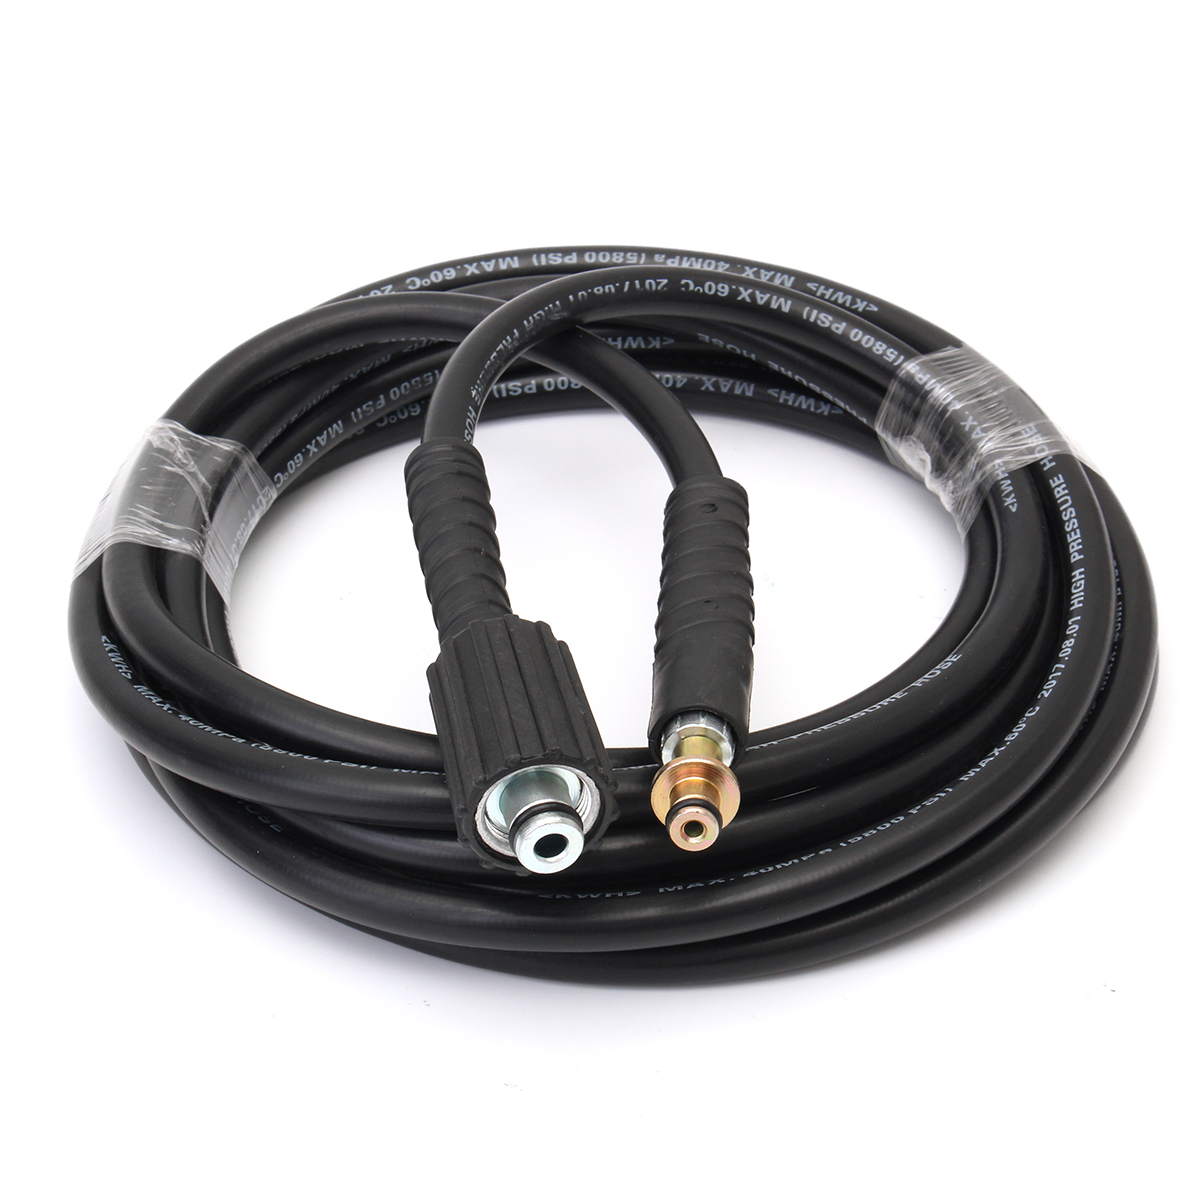 15FT/5m 2300PSI/160BAR Automatic High Pressure Hose Car Washer Replacement Cleaner For K K2 Connect With Plastic Gun